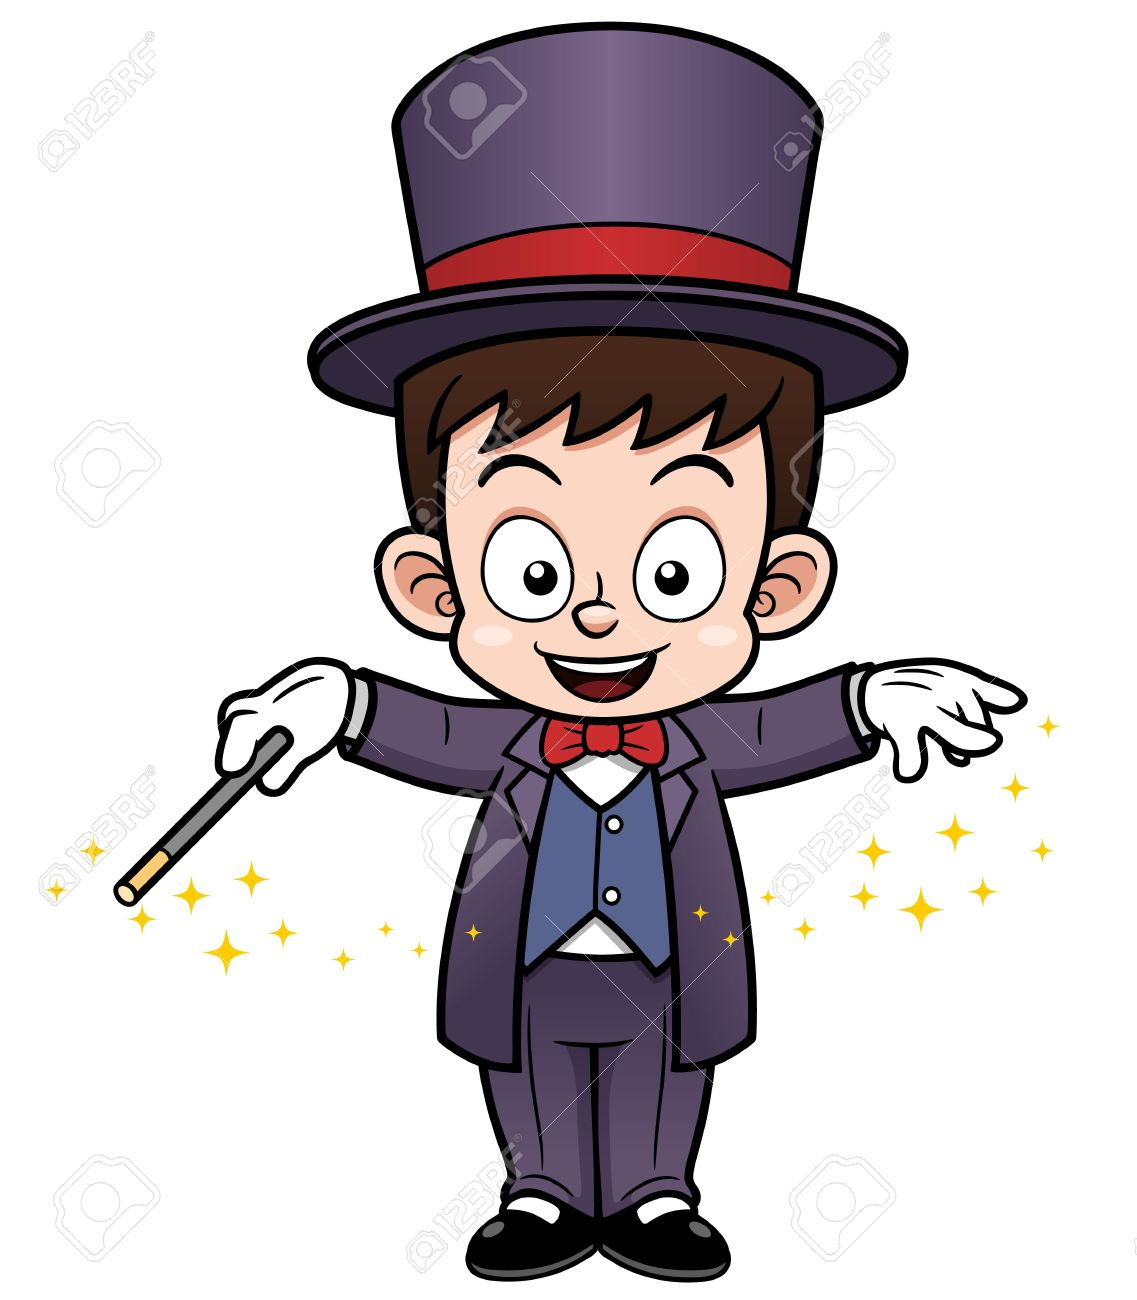 illustration of boy magician cartoon royalty free cliparts vectors rh 123rf com free magician clipart images clipart magician hat